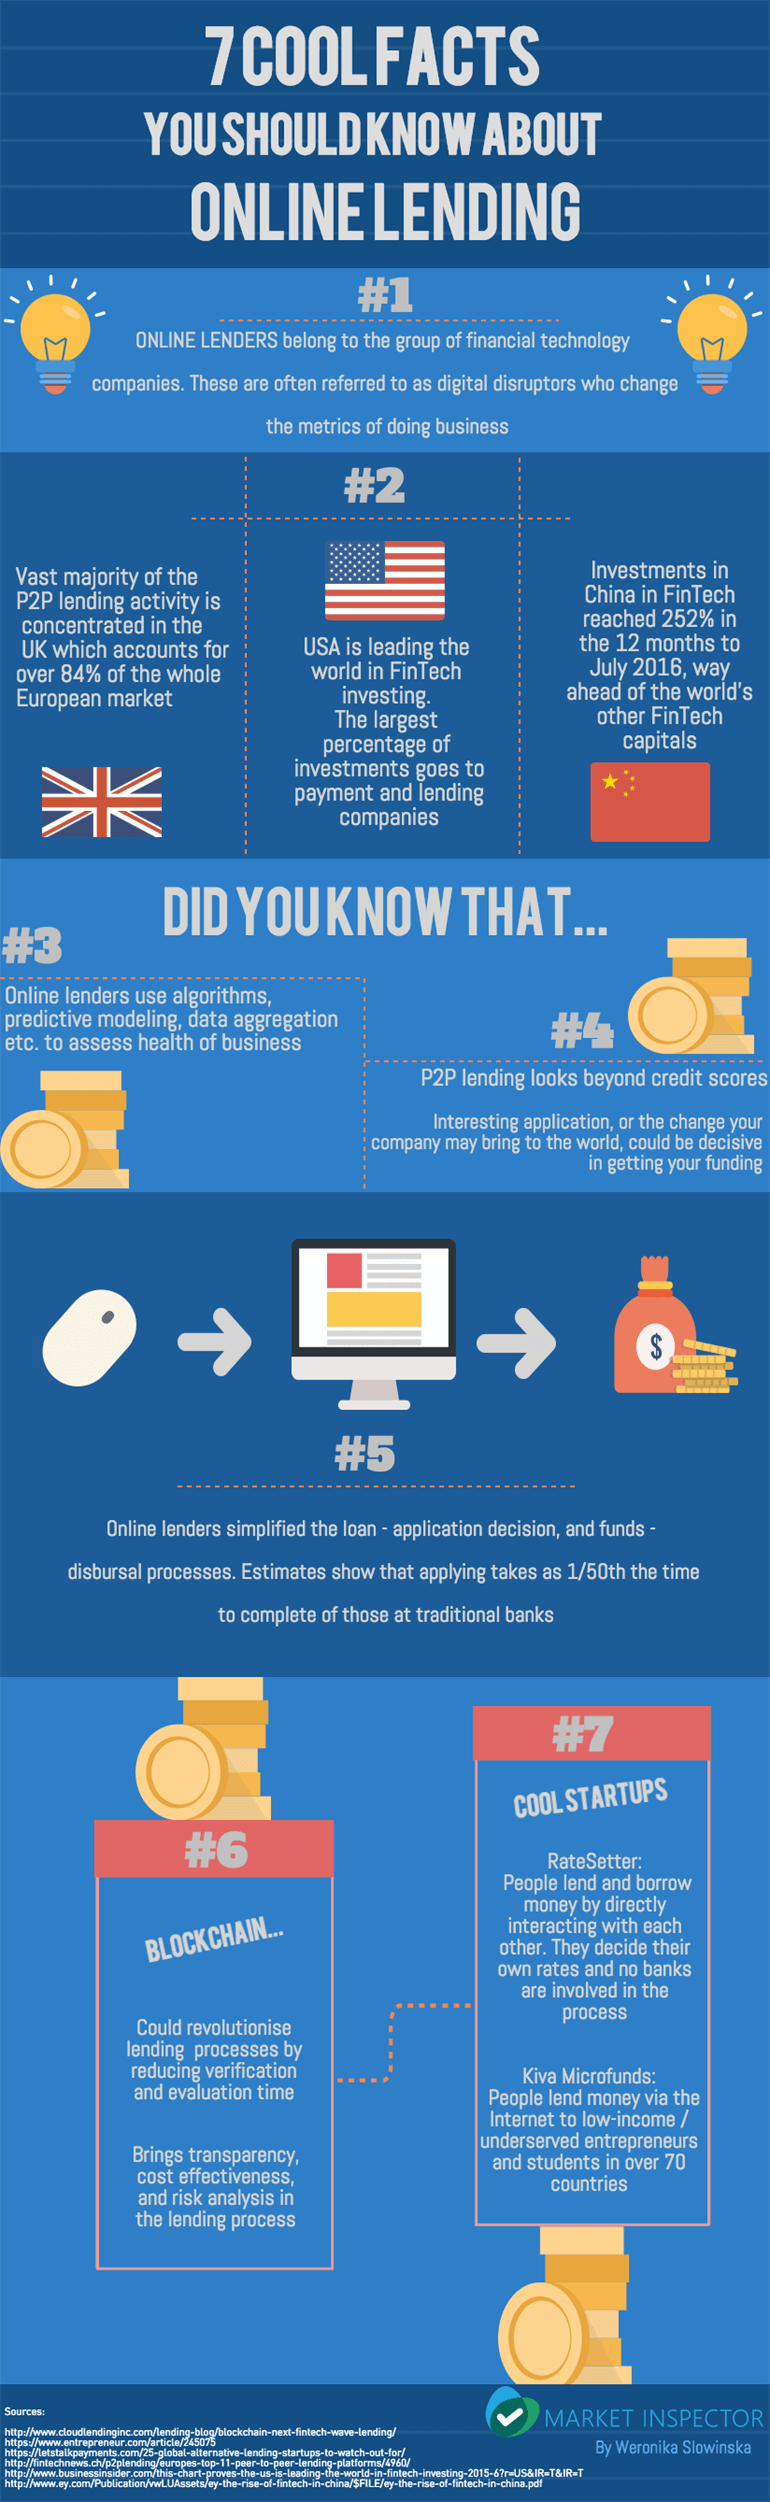 7 Cool Facts About Online Lending